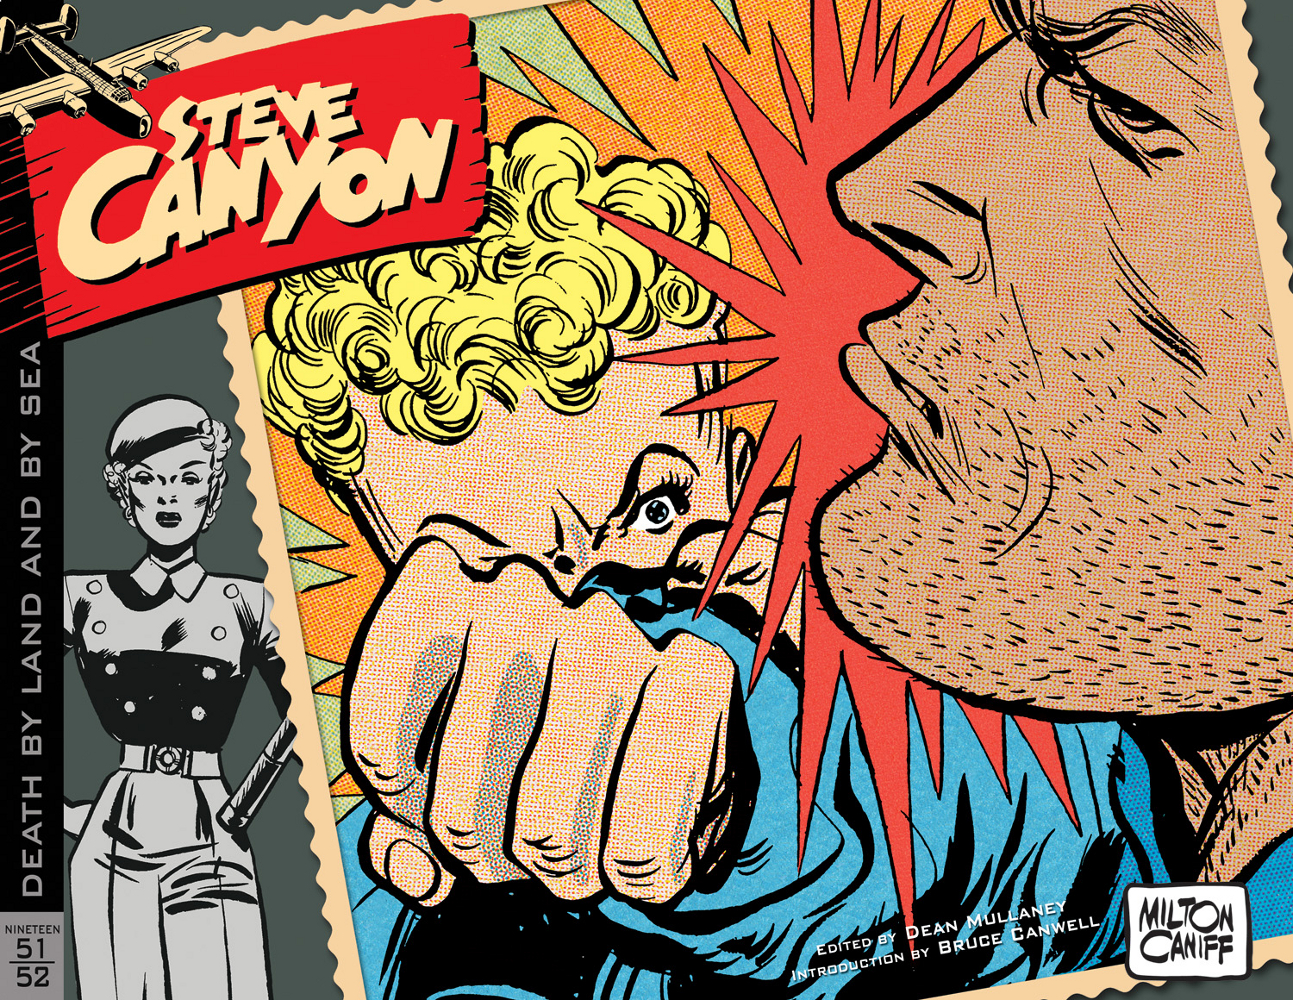 SteveCanyon Vol3 IDW PUBLISHING Solicitations for FEBRUARY 2013